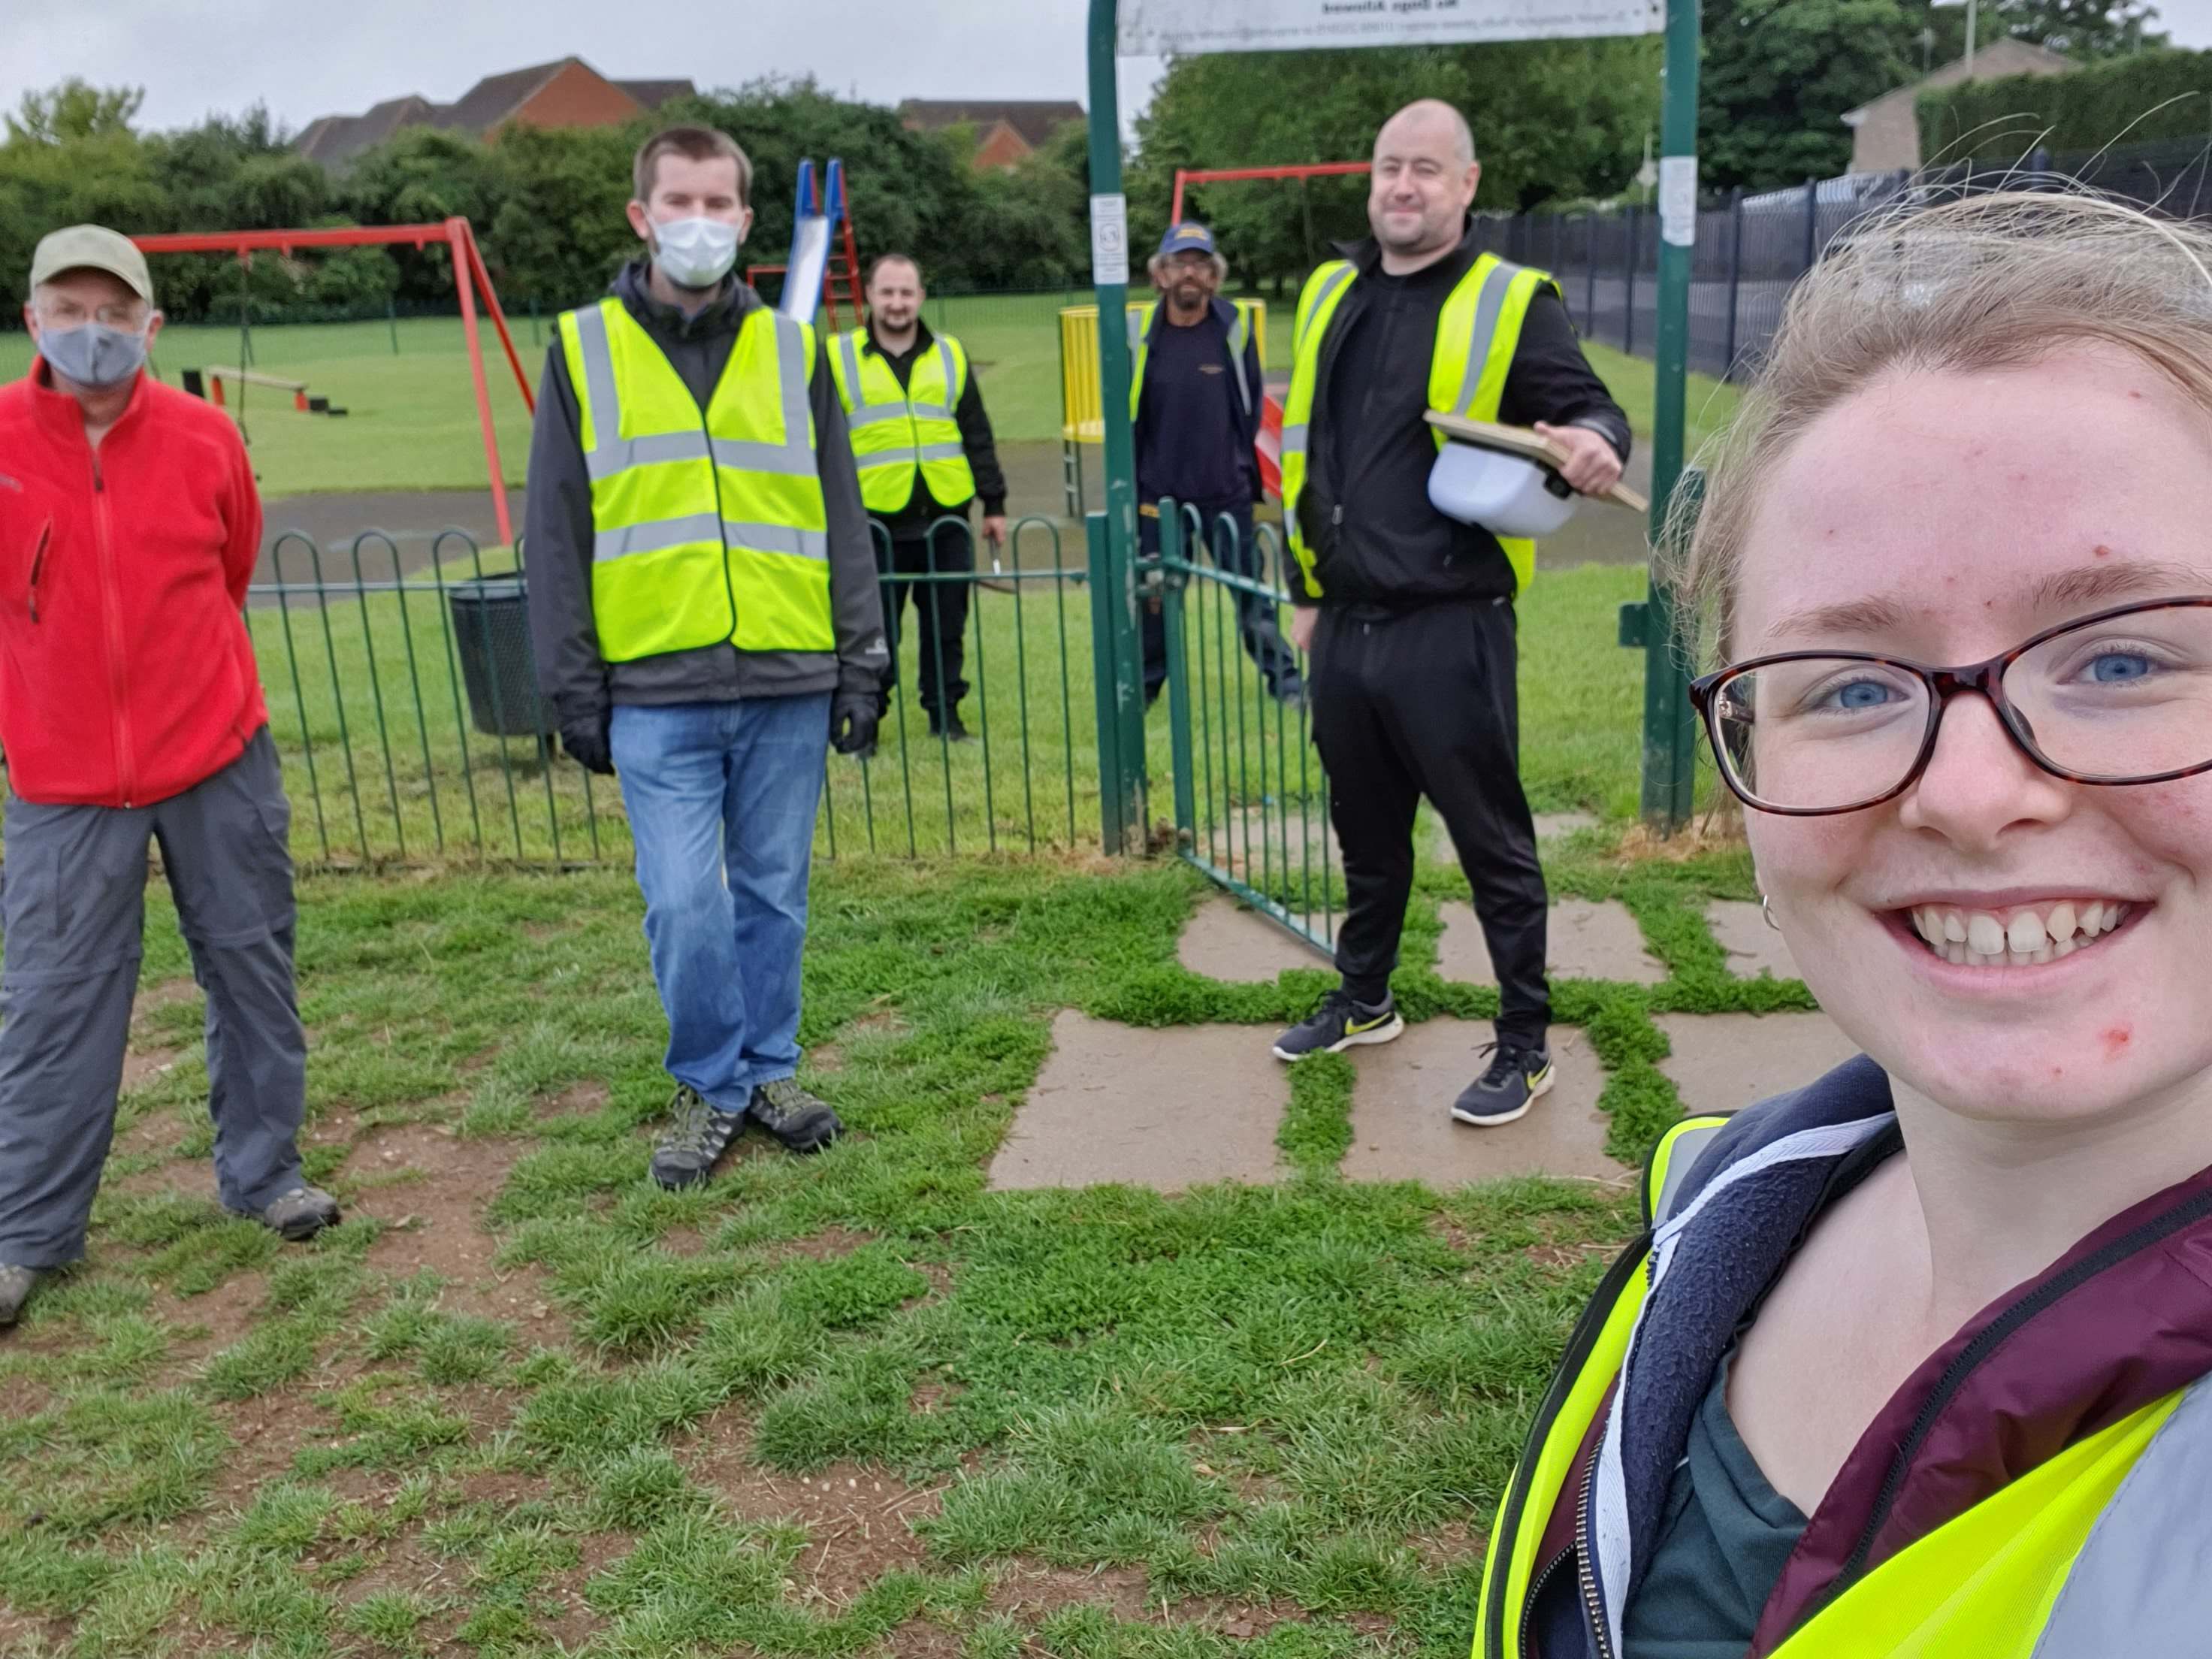 Cllr Zoe Mclernon with the council's outdoors team helping to get parks ready to re-open